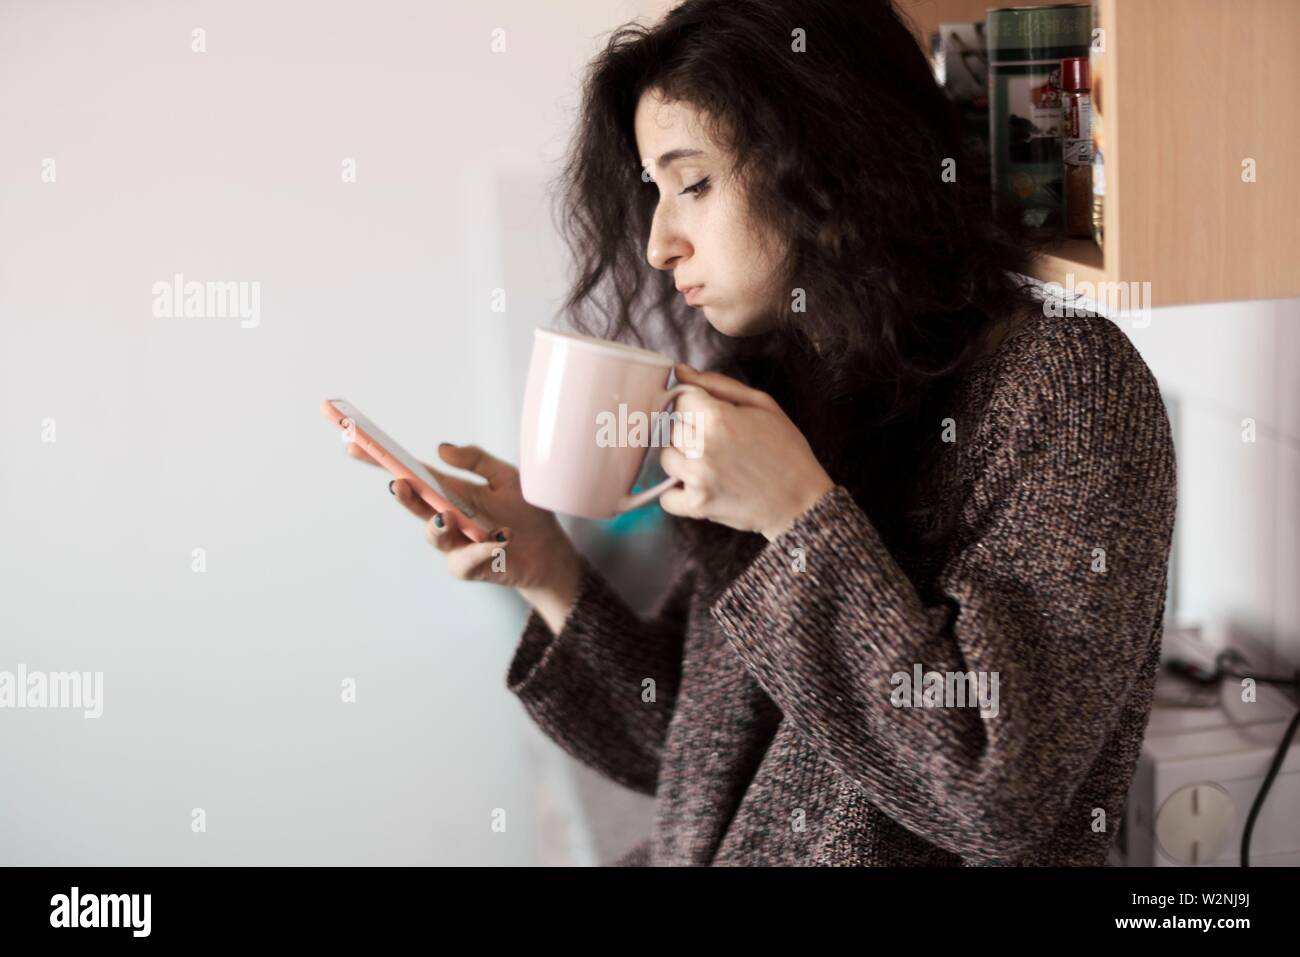 young woman using smartphone in morning - Stock Image